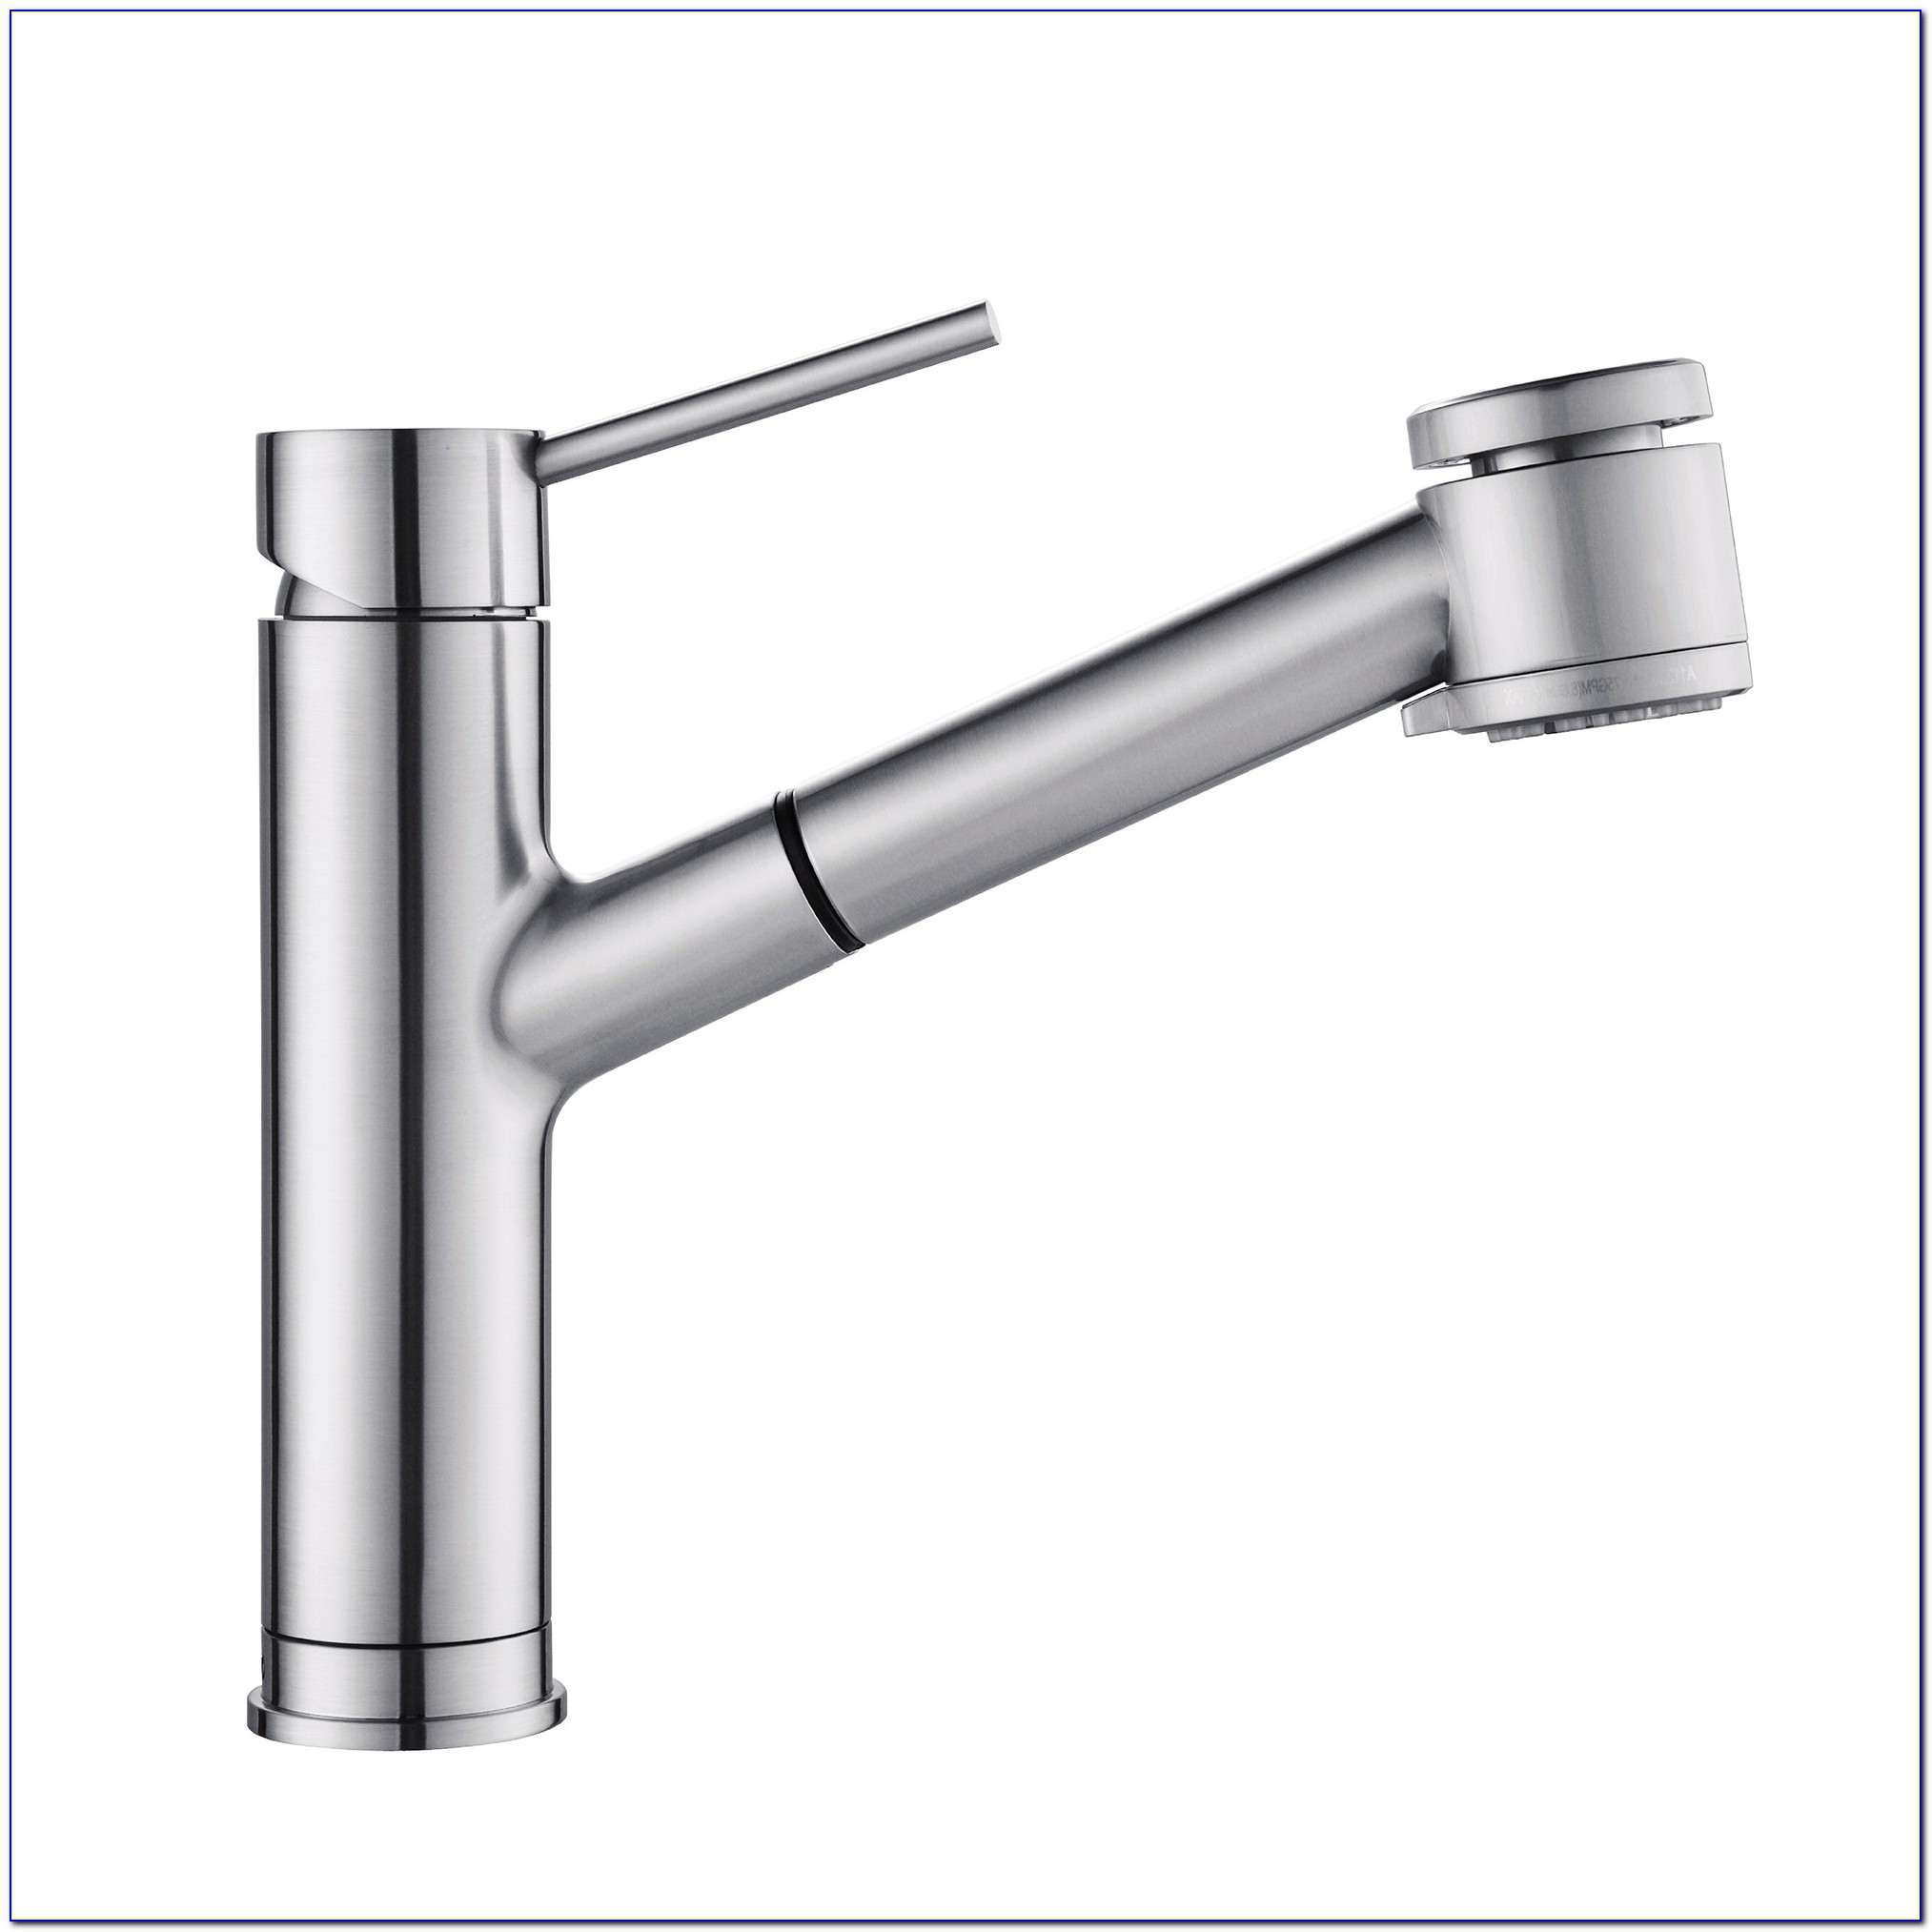 Moen Touchless Kitchen Faucet Leaking